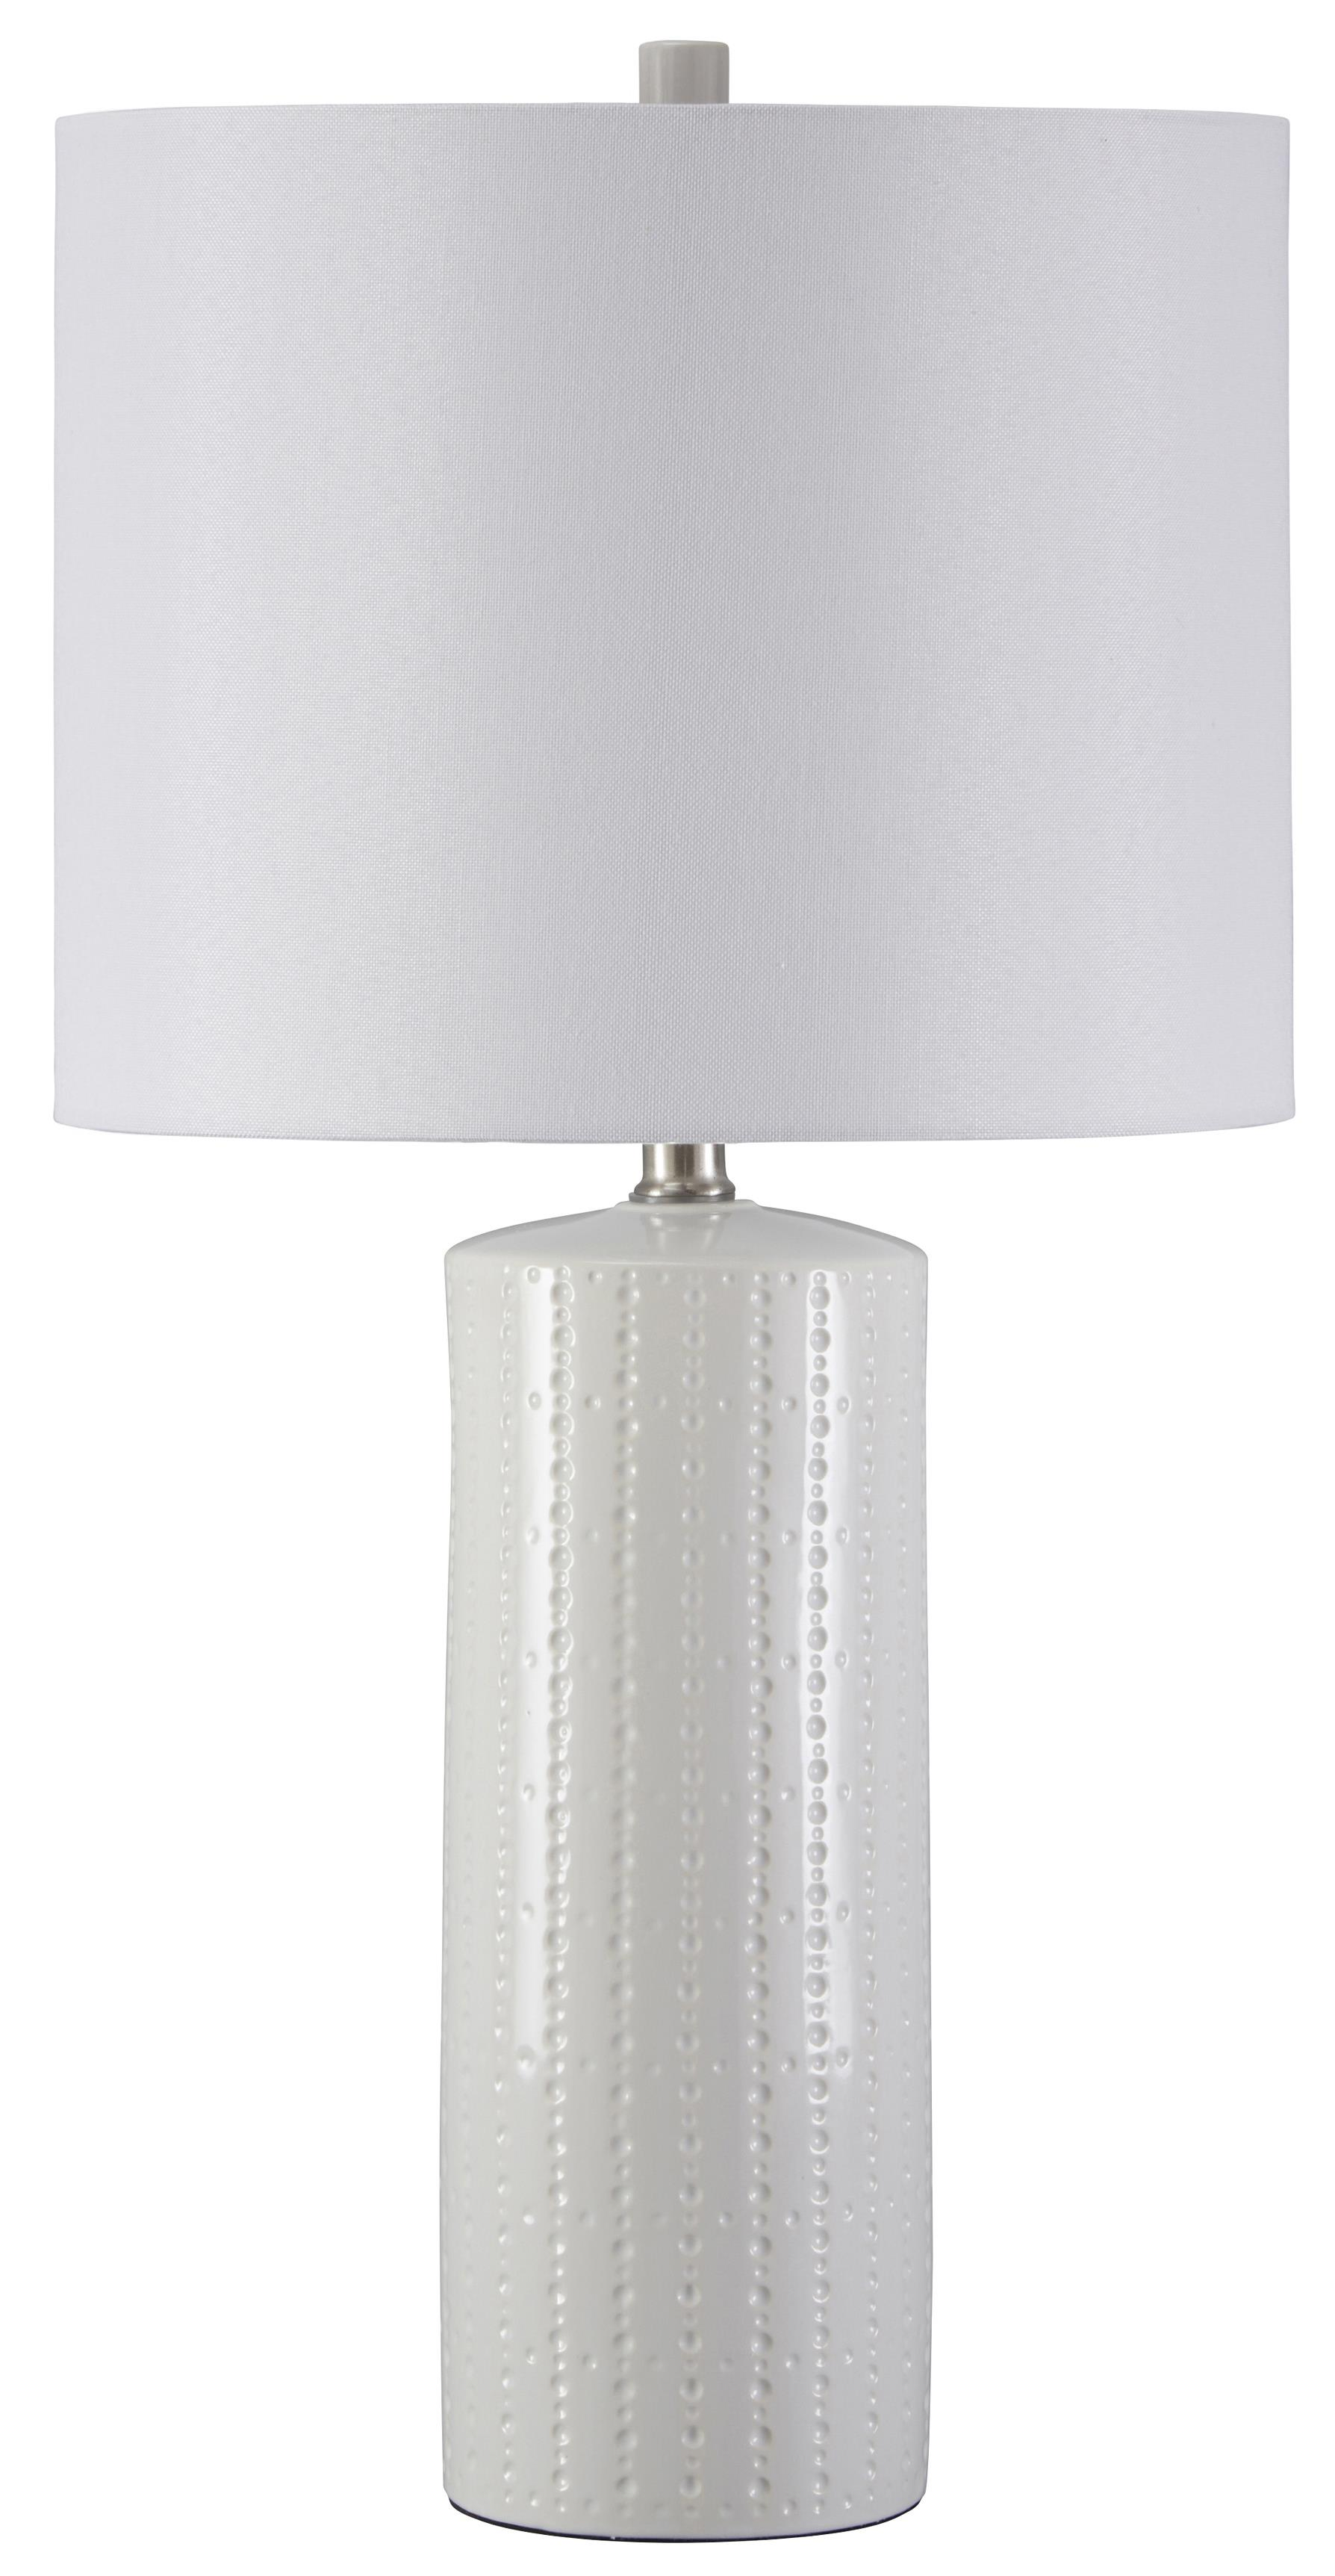 Lamps - Contemporary Set of 2 Steuben Ceramic Table Lamps by Ashley (Signature Design) at Johnny Janosik